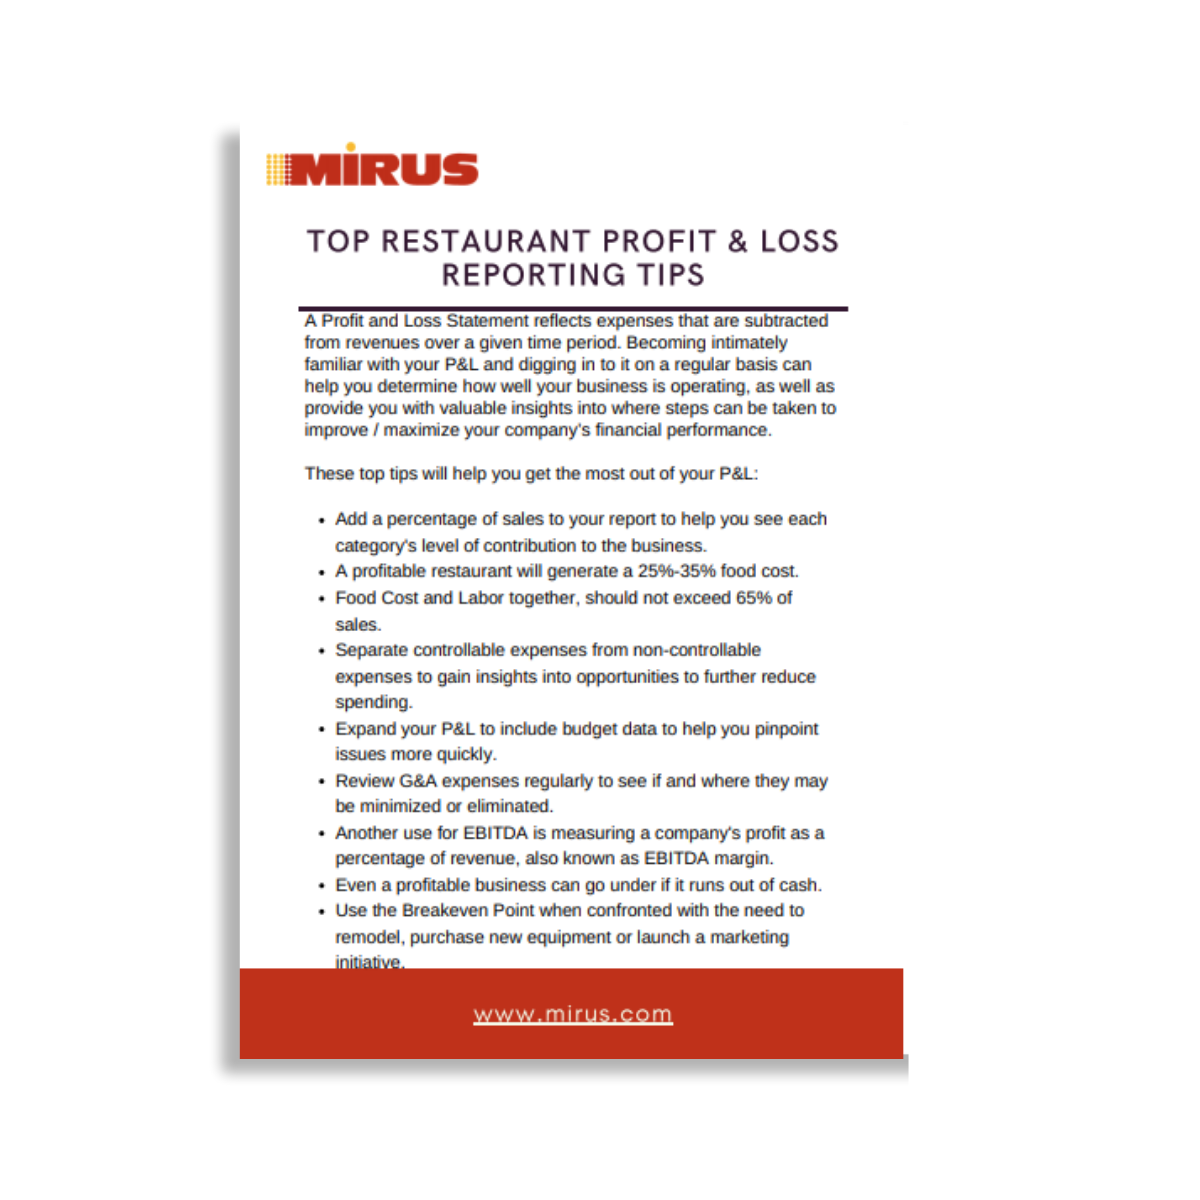 Restaurant Profit & Loss Tips Graphic